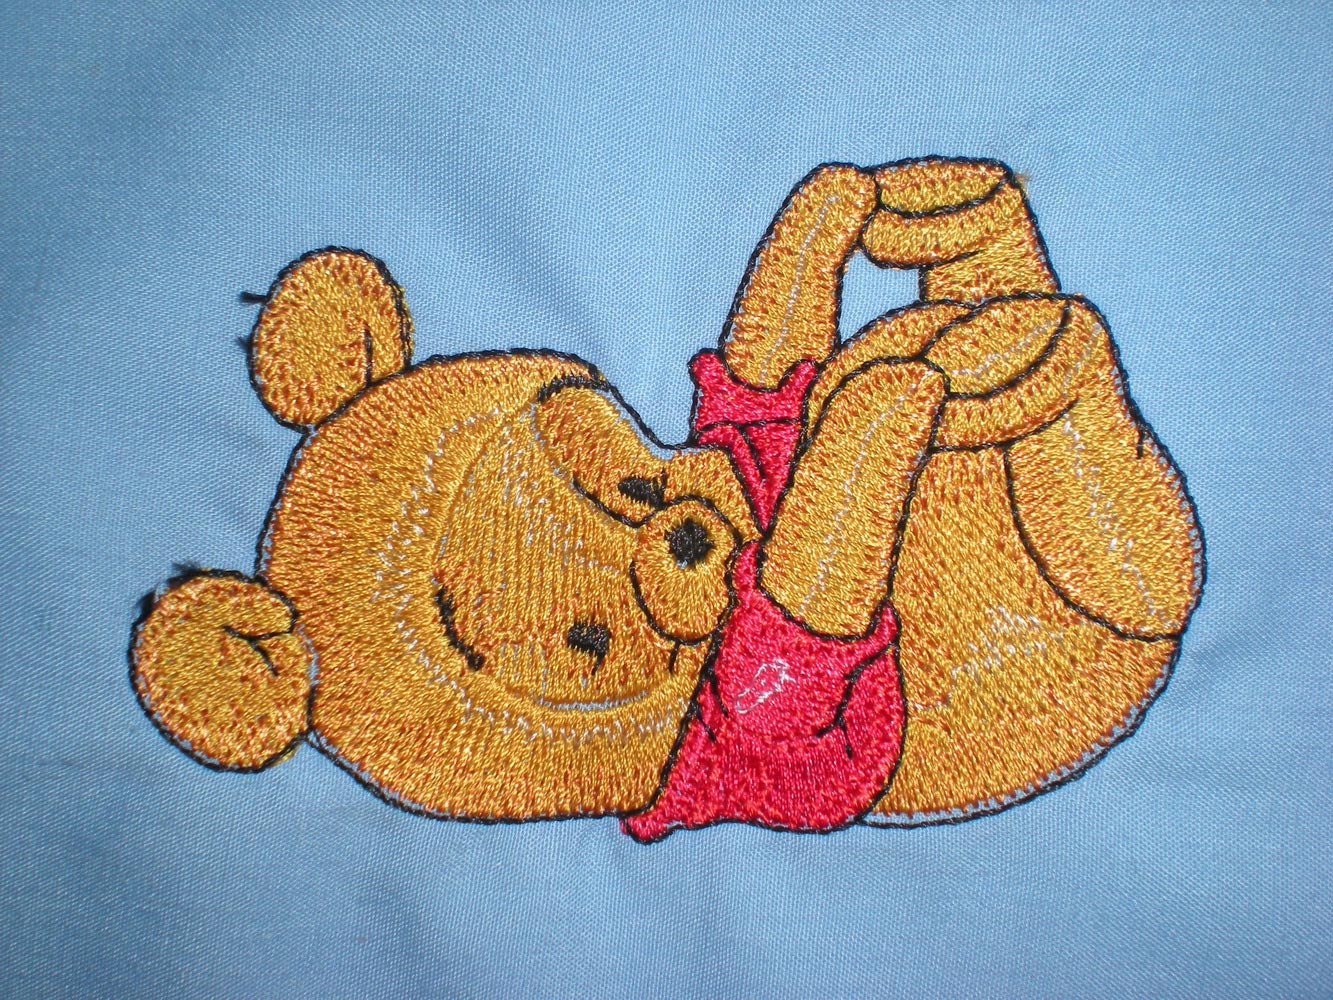 Baby Pooh design on bib embroidered